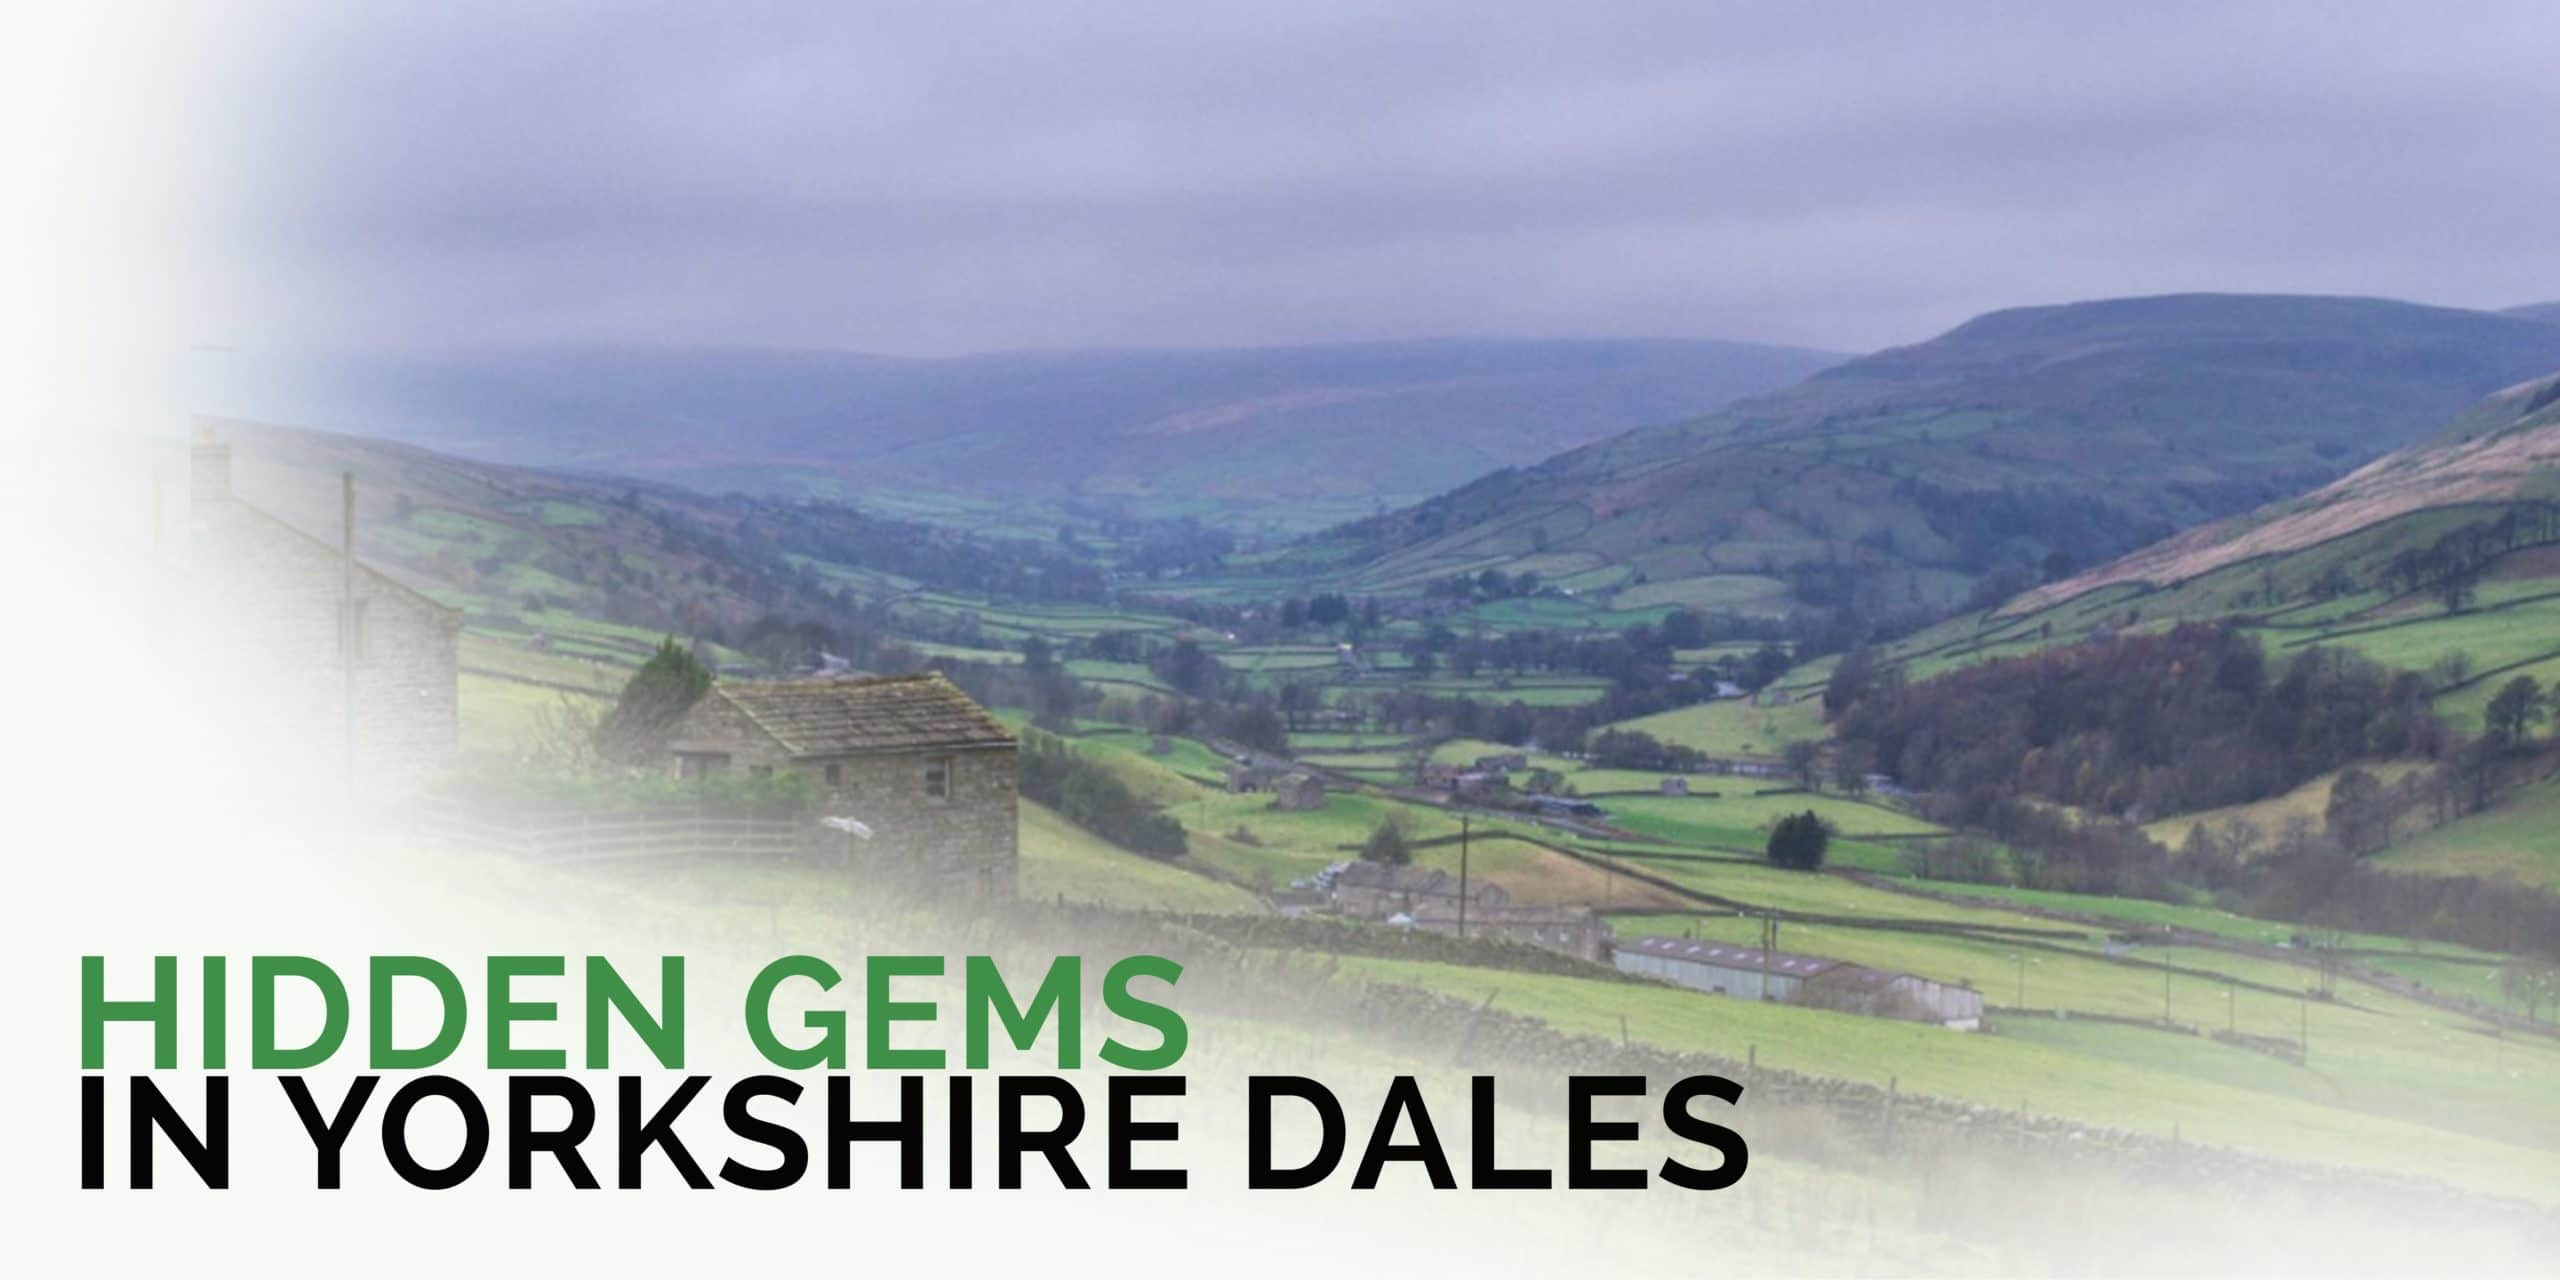 Hidden gems in yorkshire dales